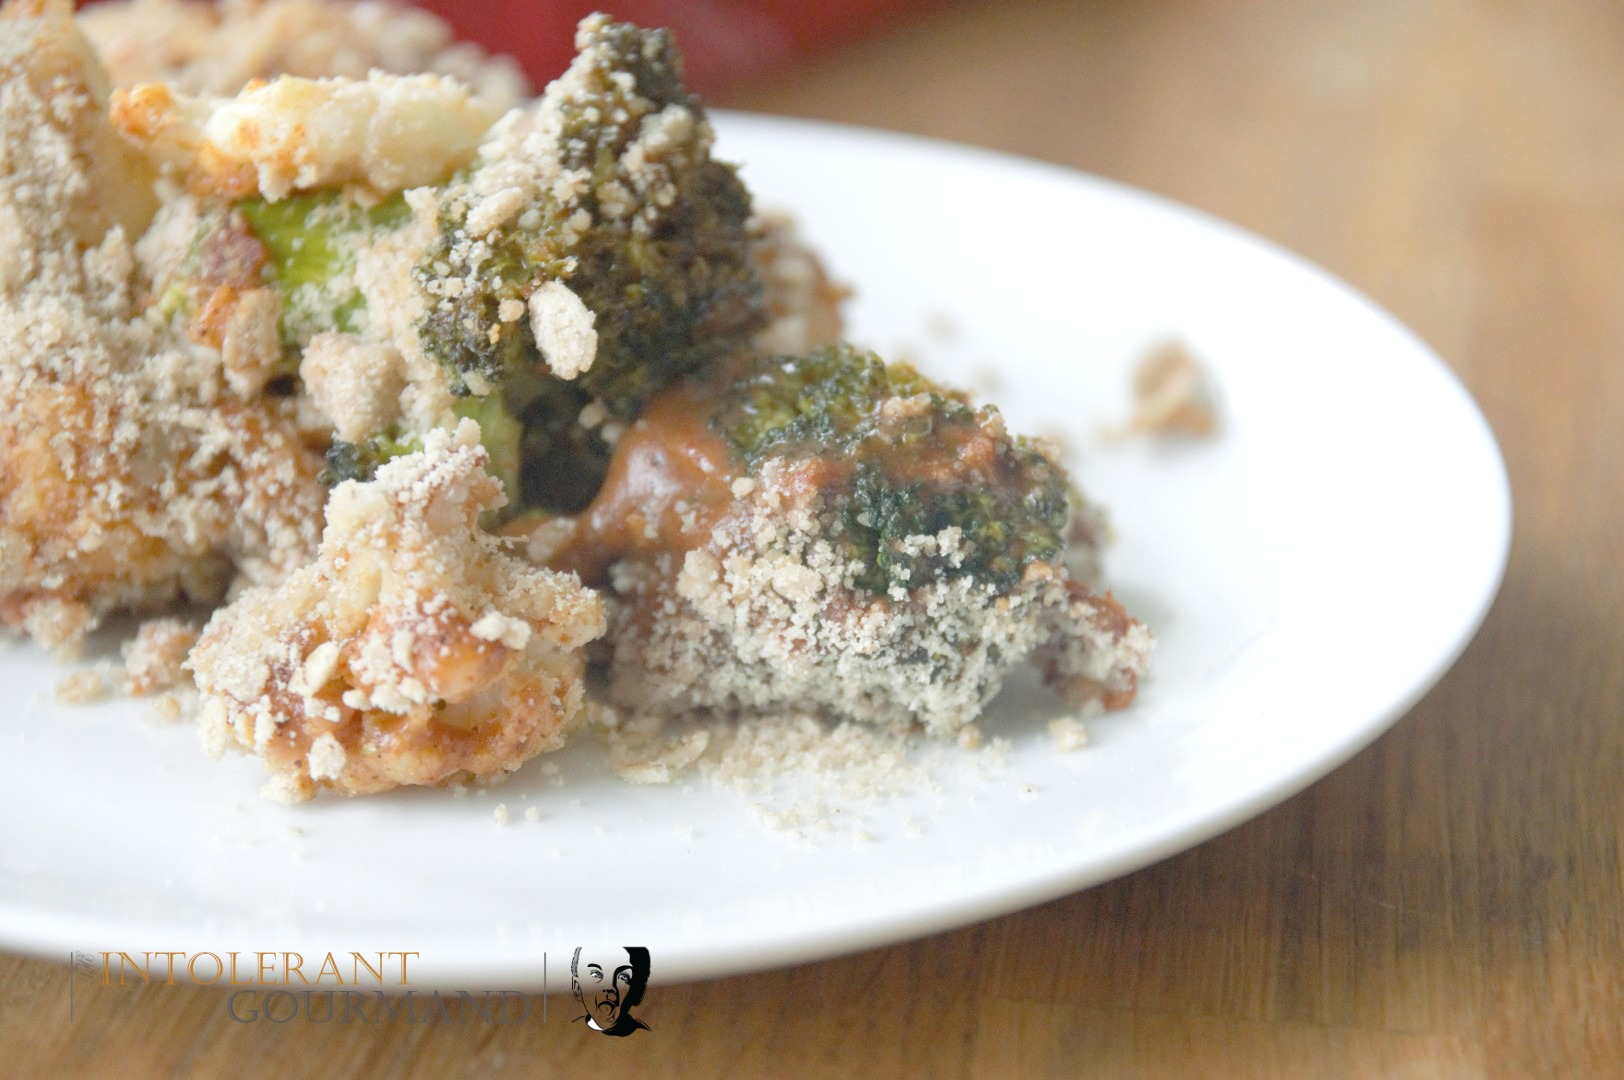 Broccoli Cauliflower Crumble - a delicious take on the classic crumble, given a gluten-free savoury twist! www.intolerantgourmand.com